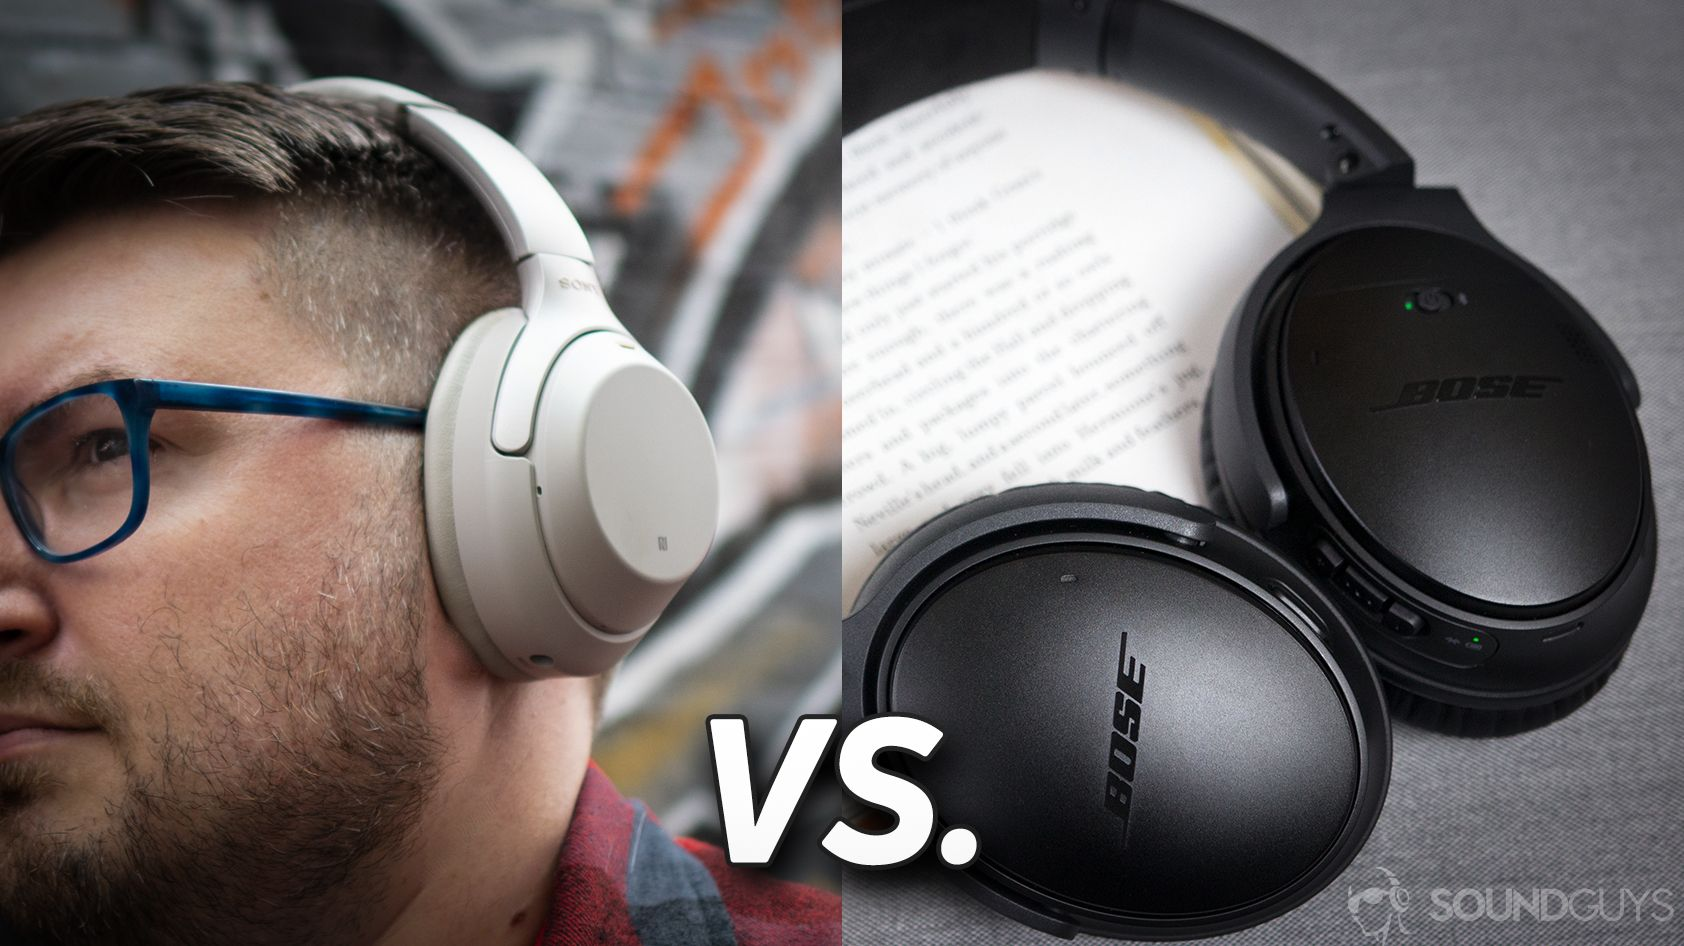 Sony WH-1000XM3 vs. Bose QuietComfort 35 II Review